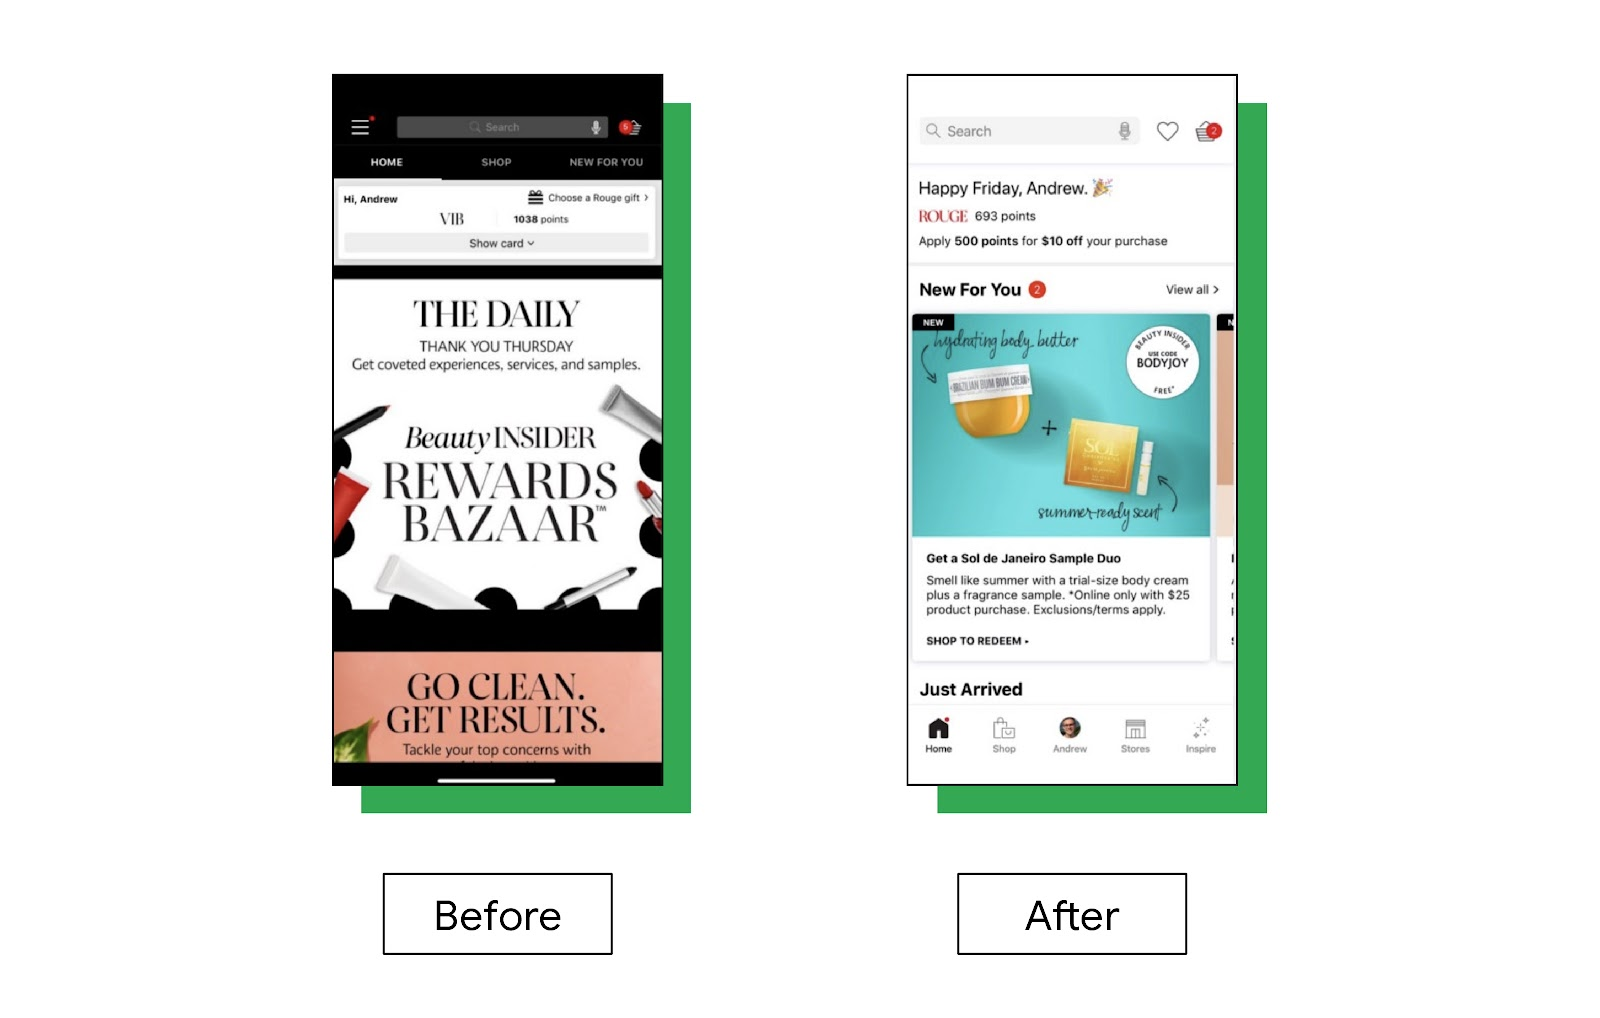 Before and after screenshots of Sephora's redesigned mobile app. The new design, on the right, has a more user-friendly bottom navigation menu and a personalized greeting at the top of the page.